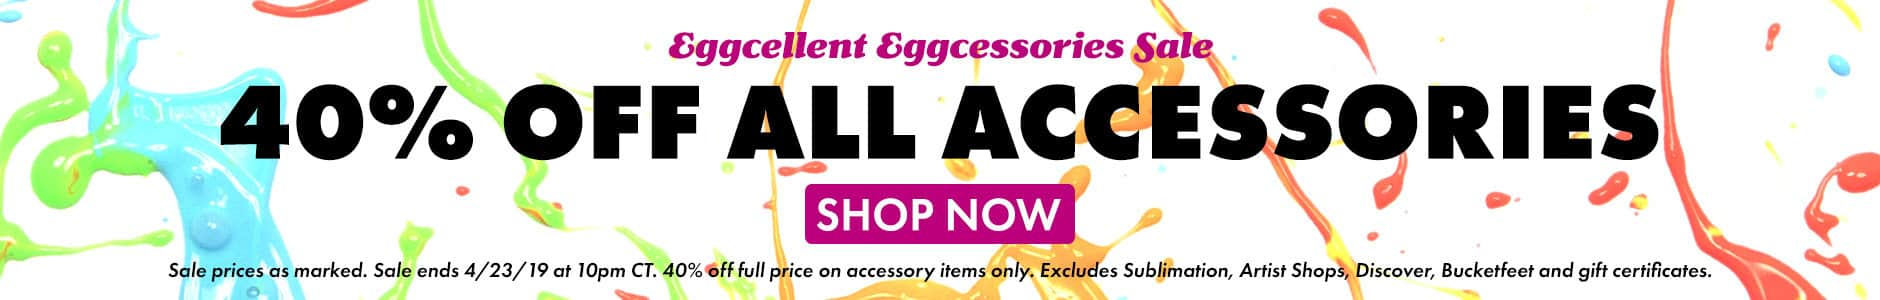 Shop 40% off Accessories